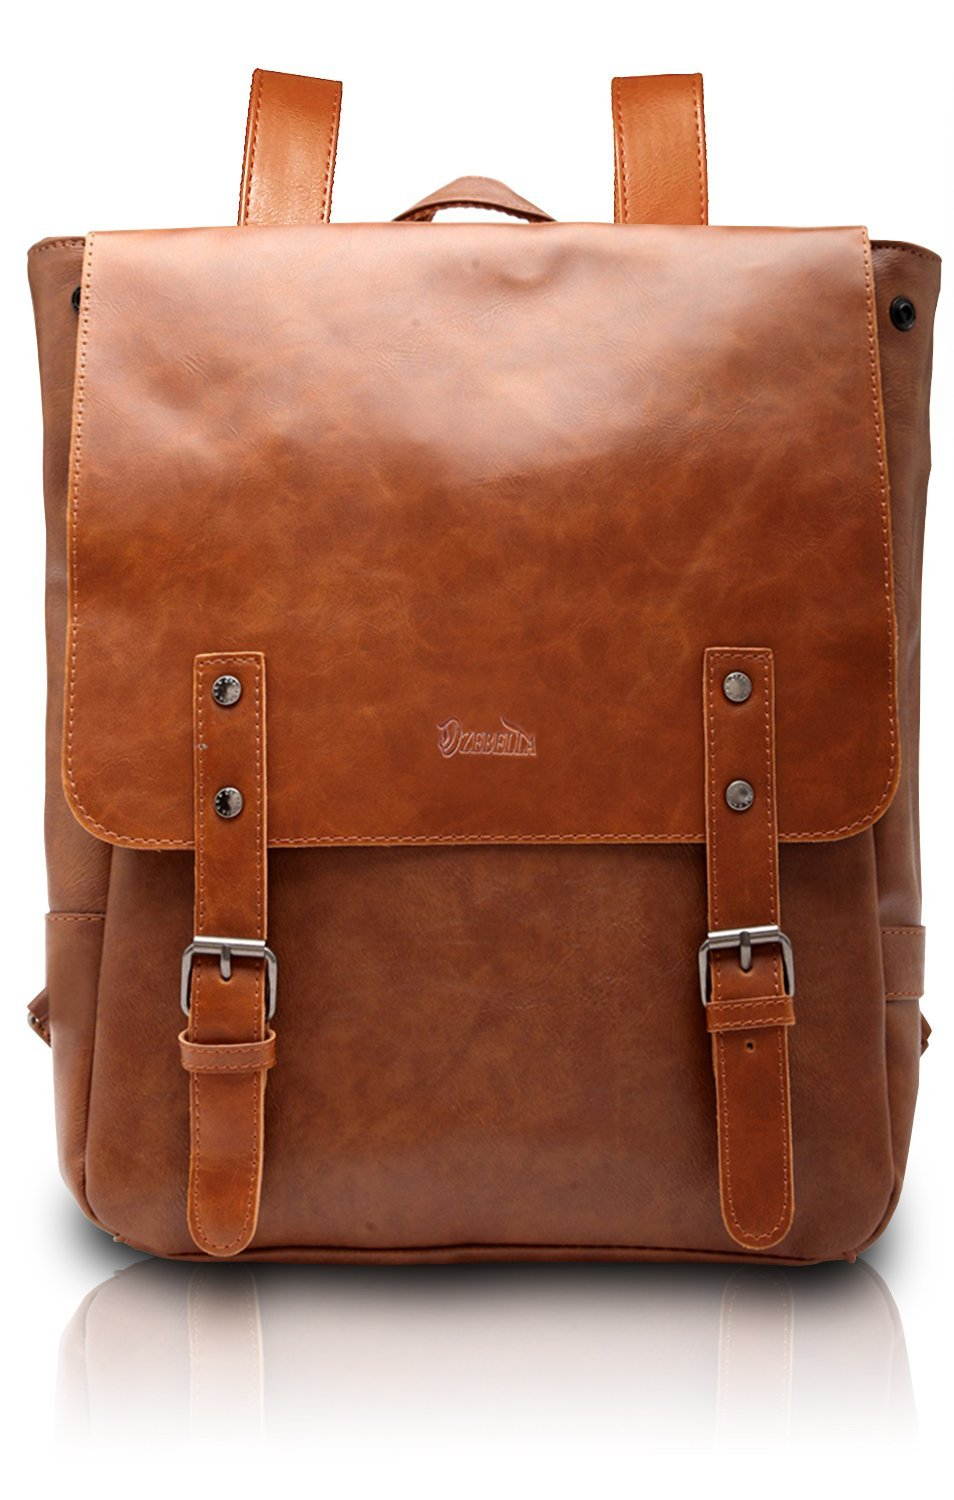 Good& god Pu Crazy Horse Leather-Like Vintage Womens Backpack School Bag (Coffee) Zebella Bag1390DY-coffee